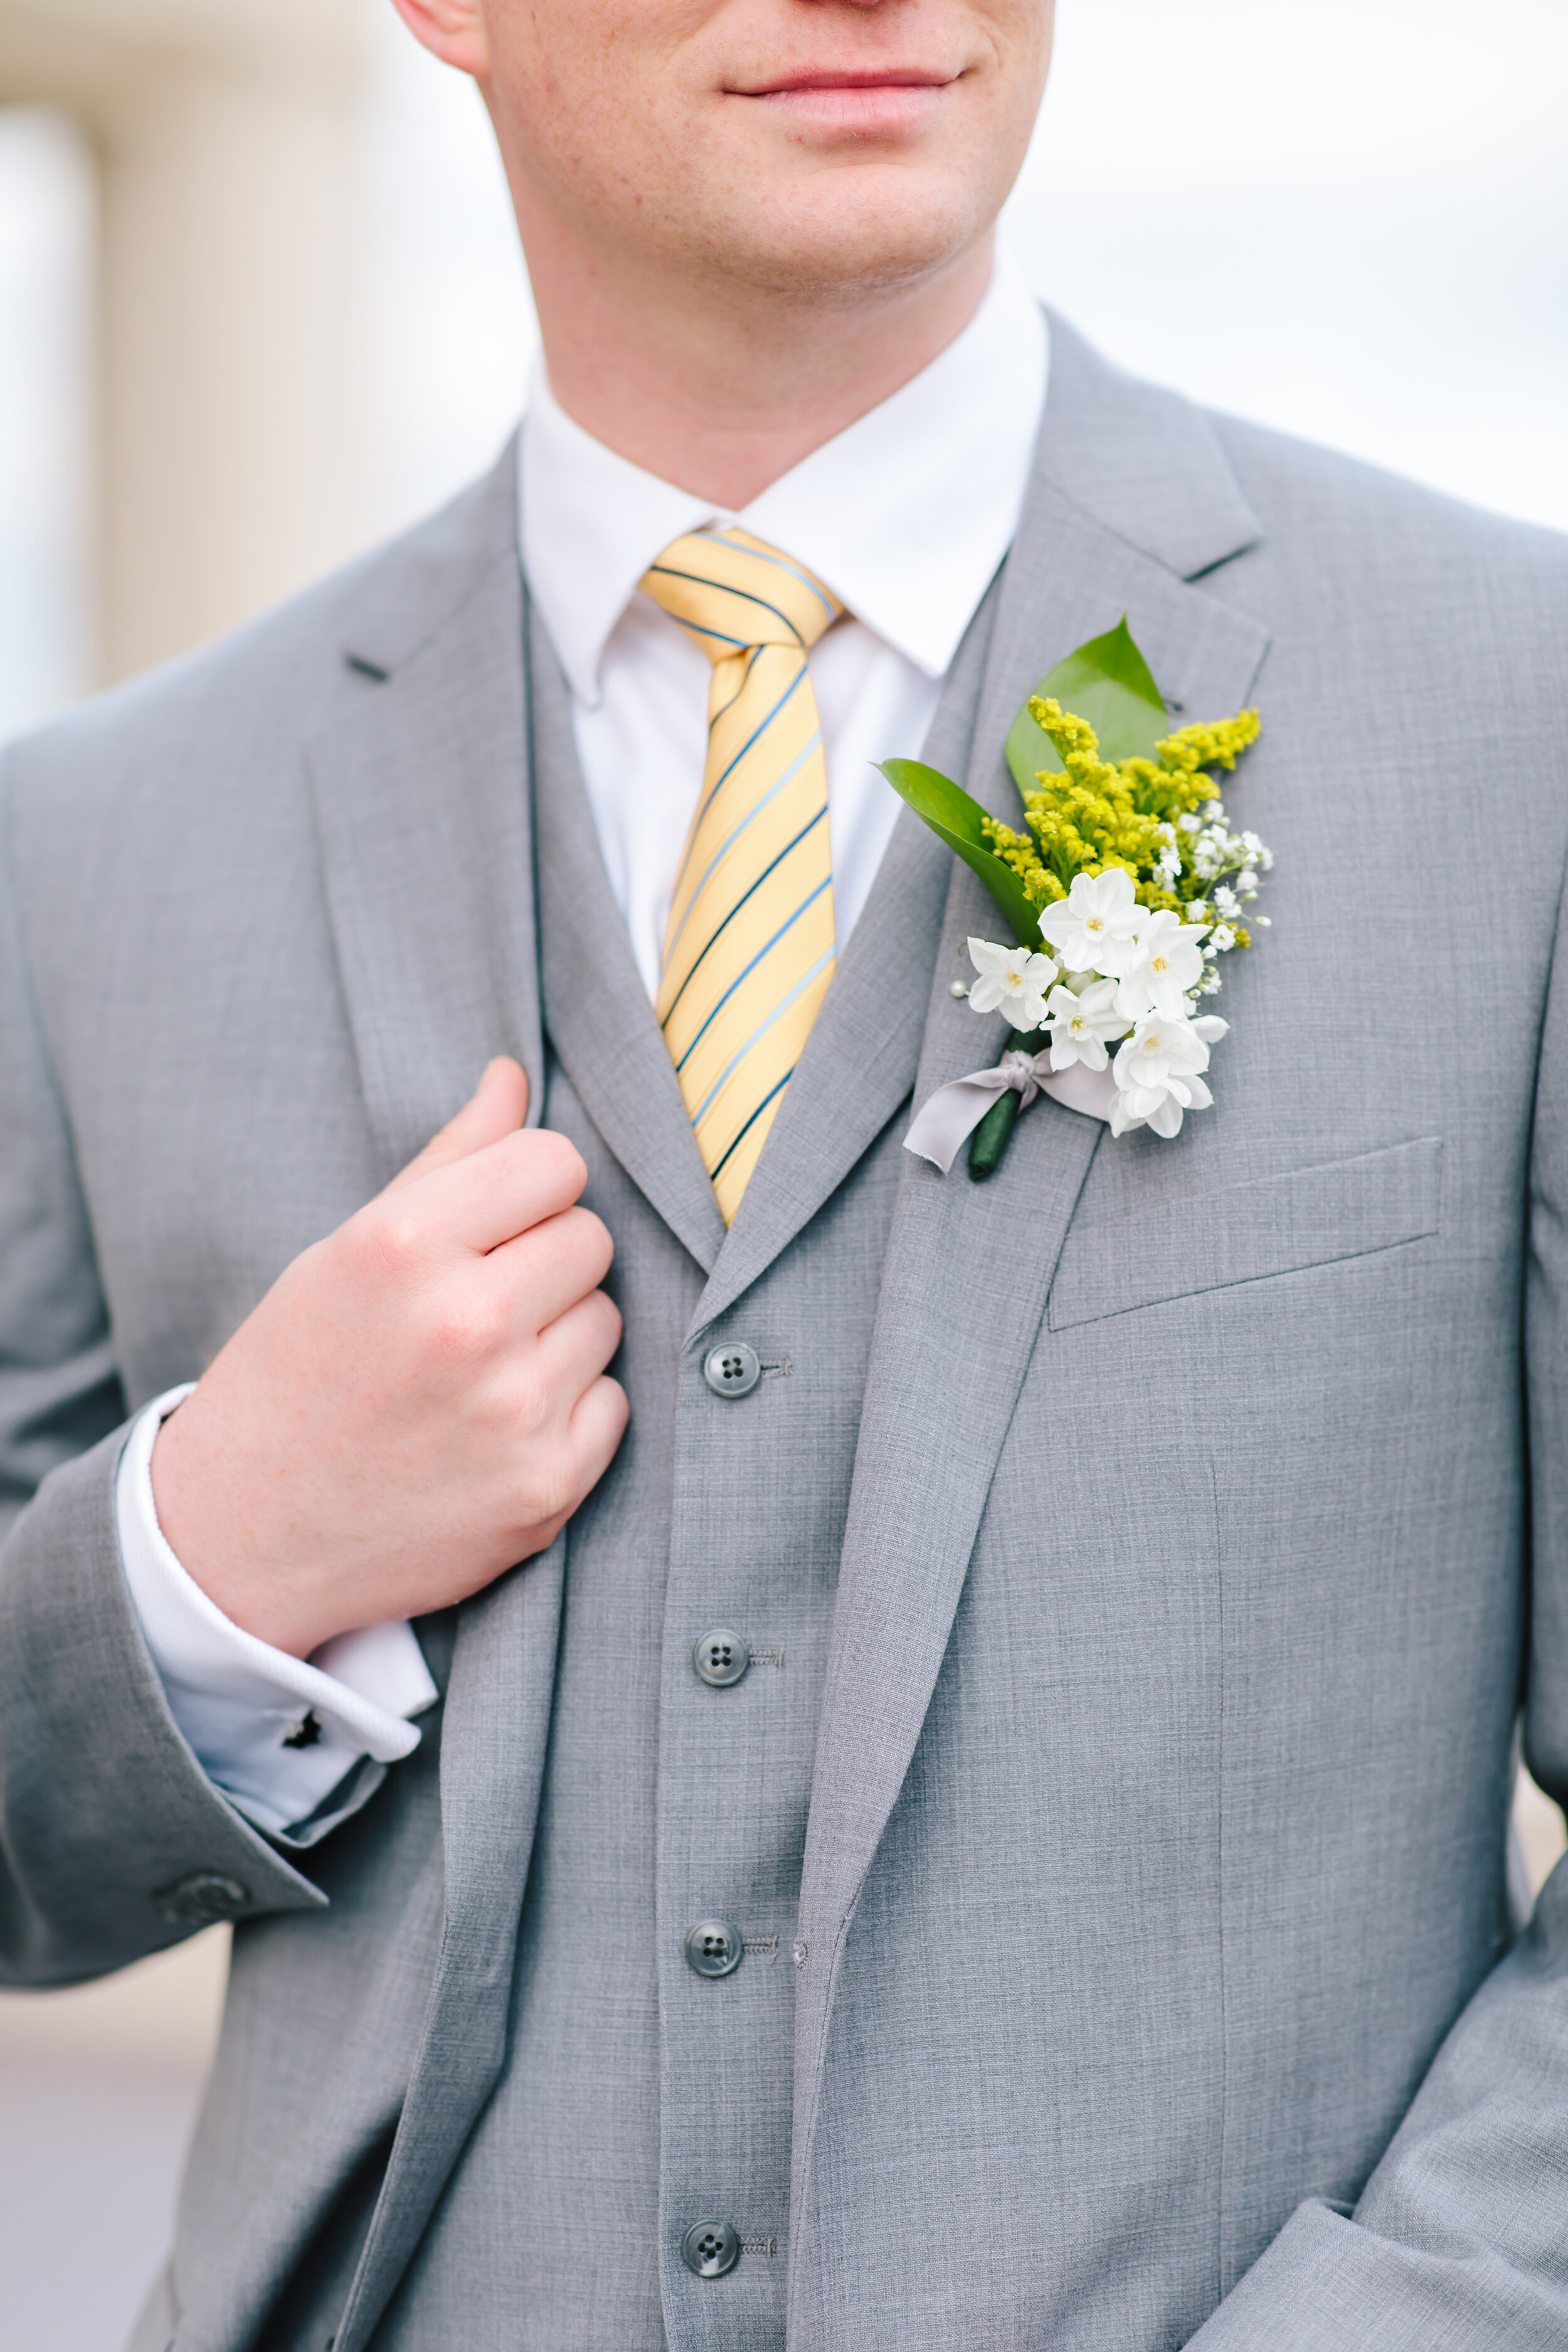 light grey suit mens wedding outfit inspiration yellow tie white and yellow wedding colors boutonniere ideas wedding inspiration groom pose inspiration lds wedding inspiration lds couple lds bride inspiration for groom utah couples professional wedding session clarity lane #weddingsession #weddinginspo #ldswedding #ldsbride #couplegoals #paysontemple #temple #profressionalphotographer #utah #love